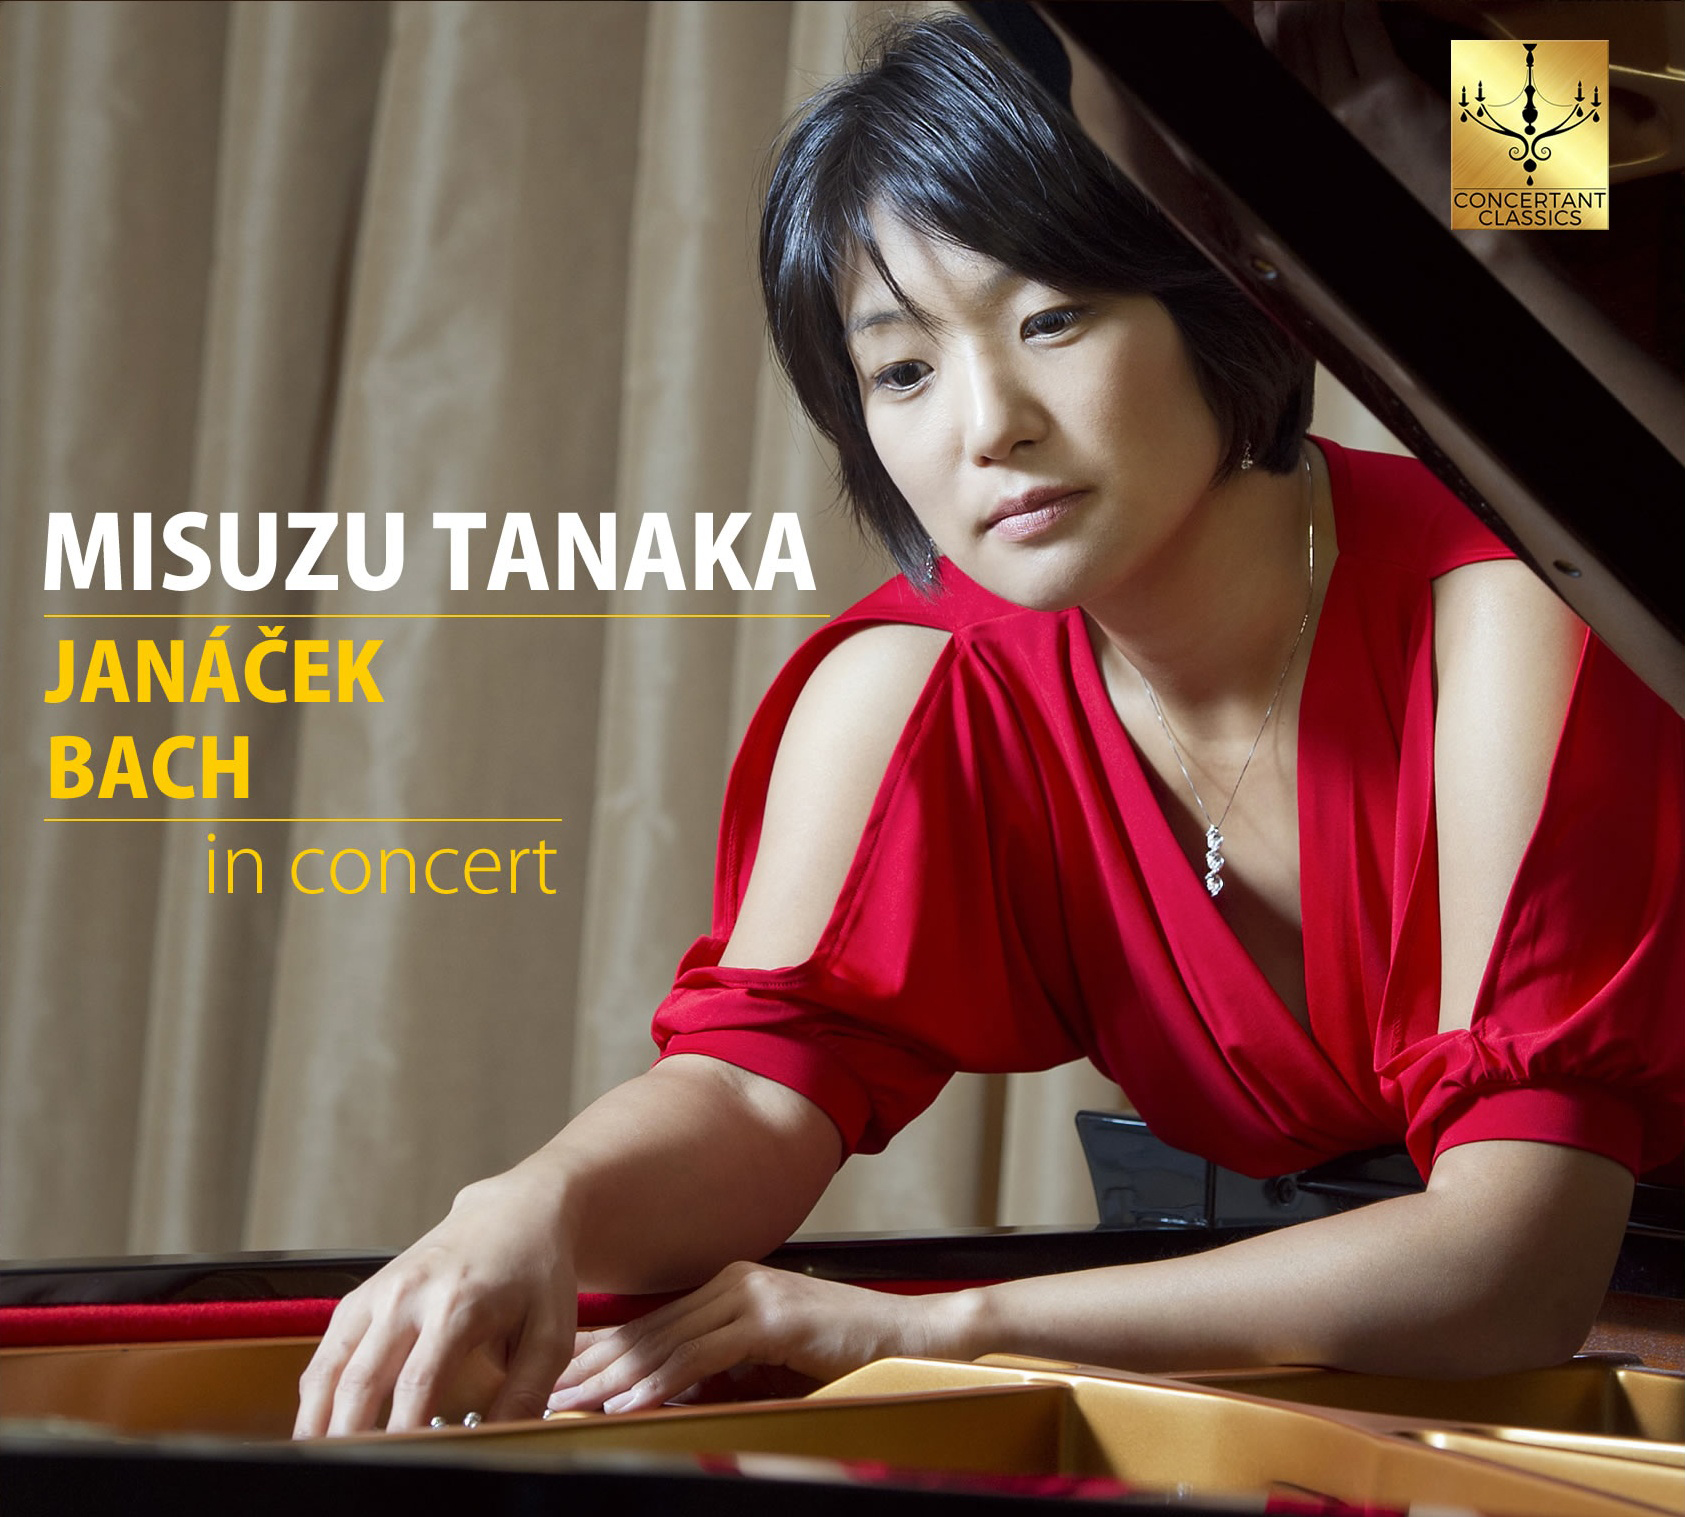 Live in concert, Misuzu Tanaka performs music by two composers she holds closely to her heart: J. S. Bach and Janáček. Structural perfection and the display of raw uninhibited emotions from the two masters create an unexpected yet perfect pairing. More Information